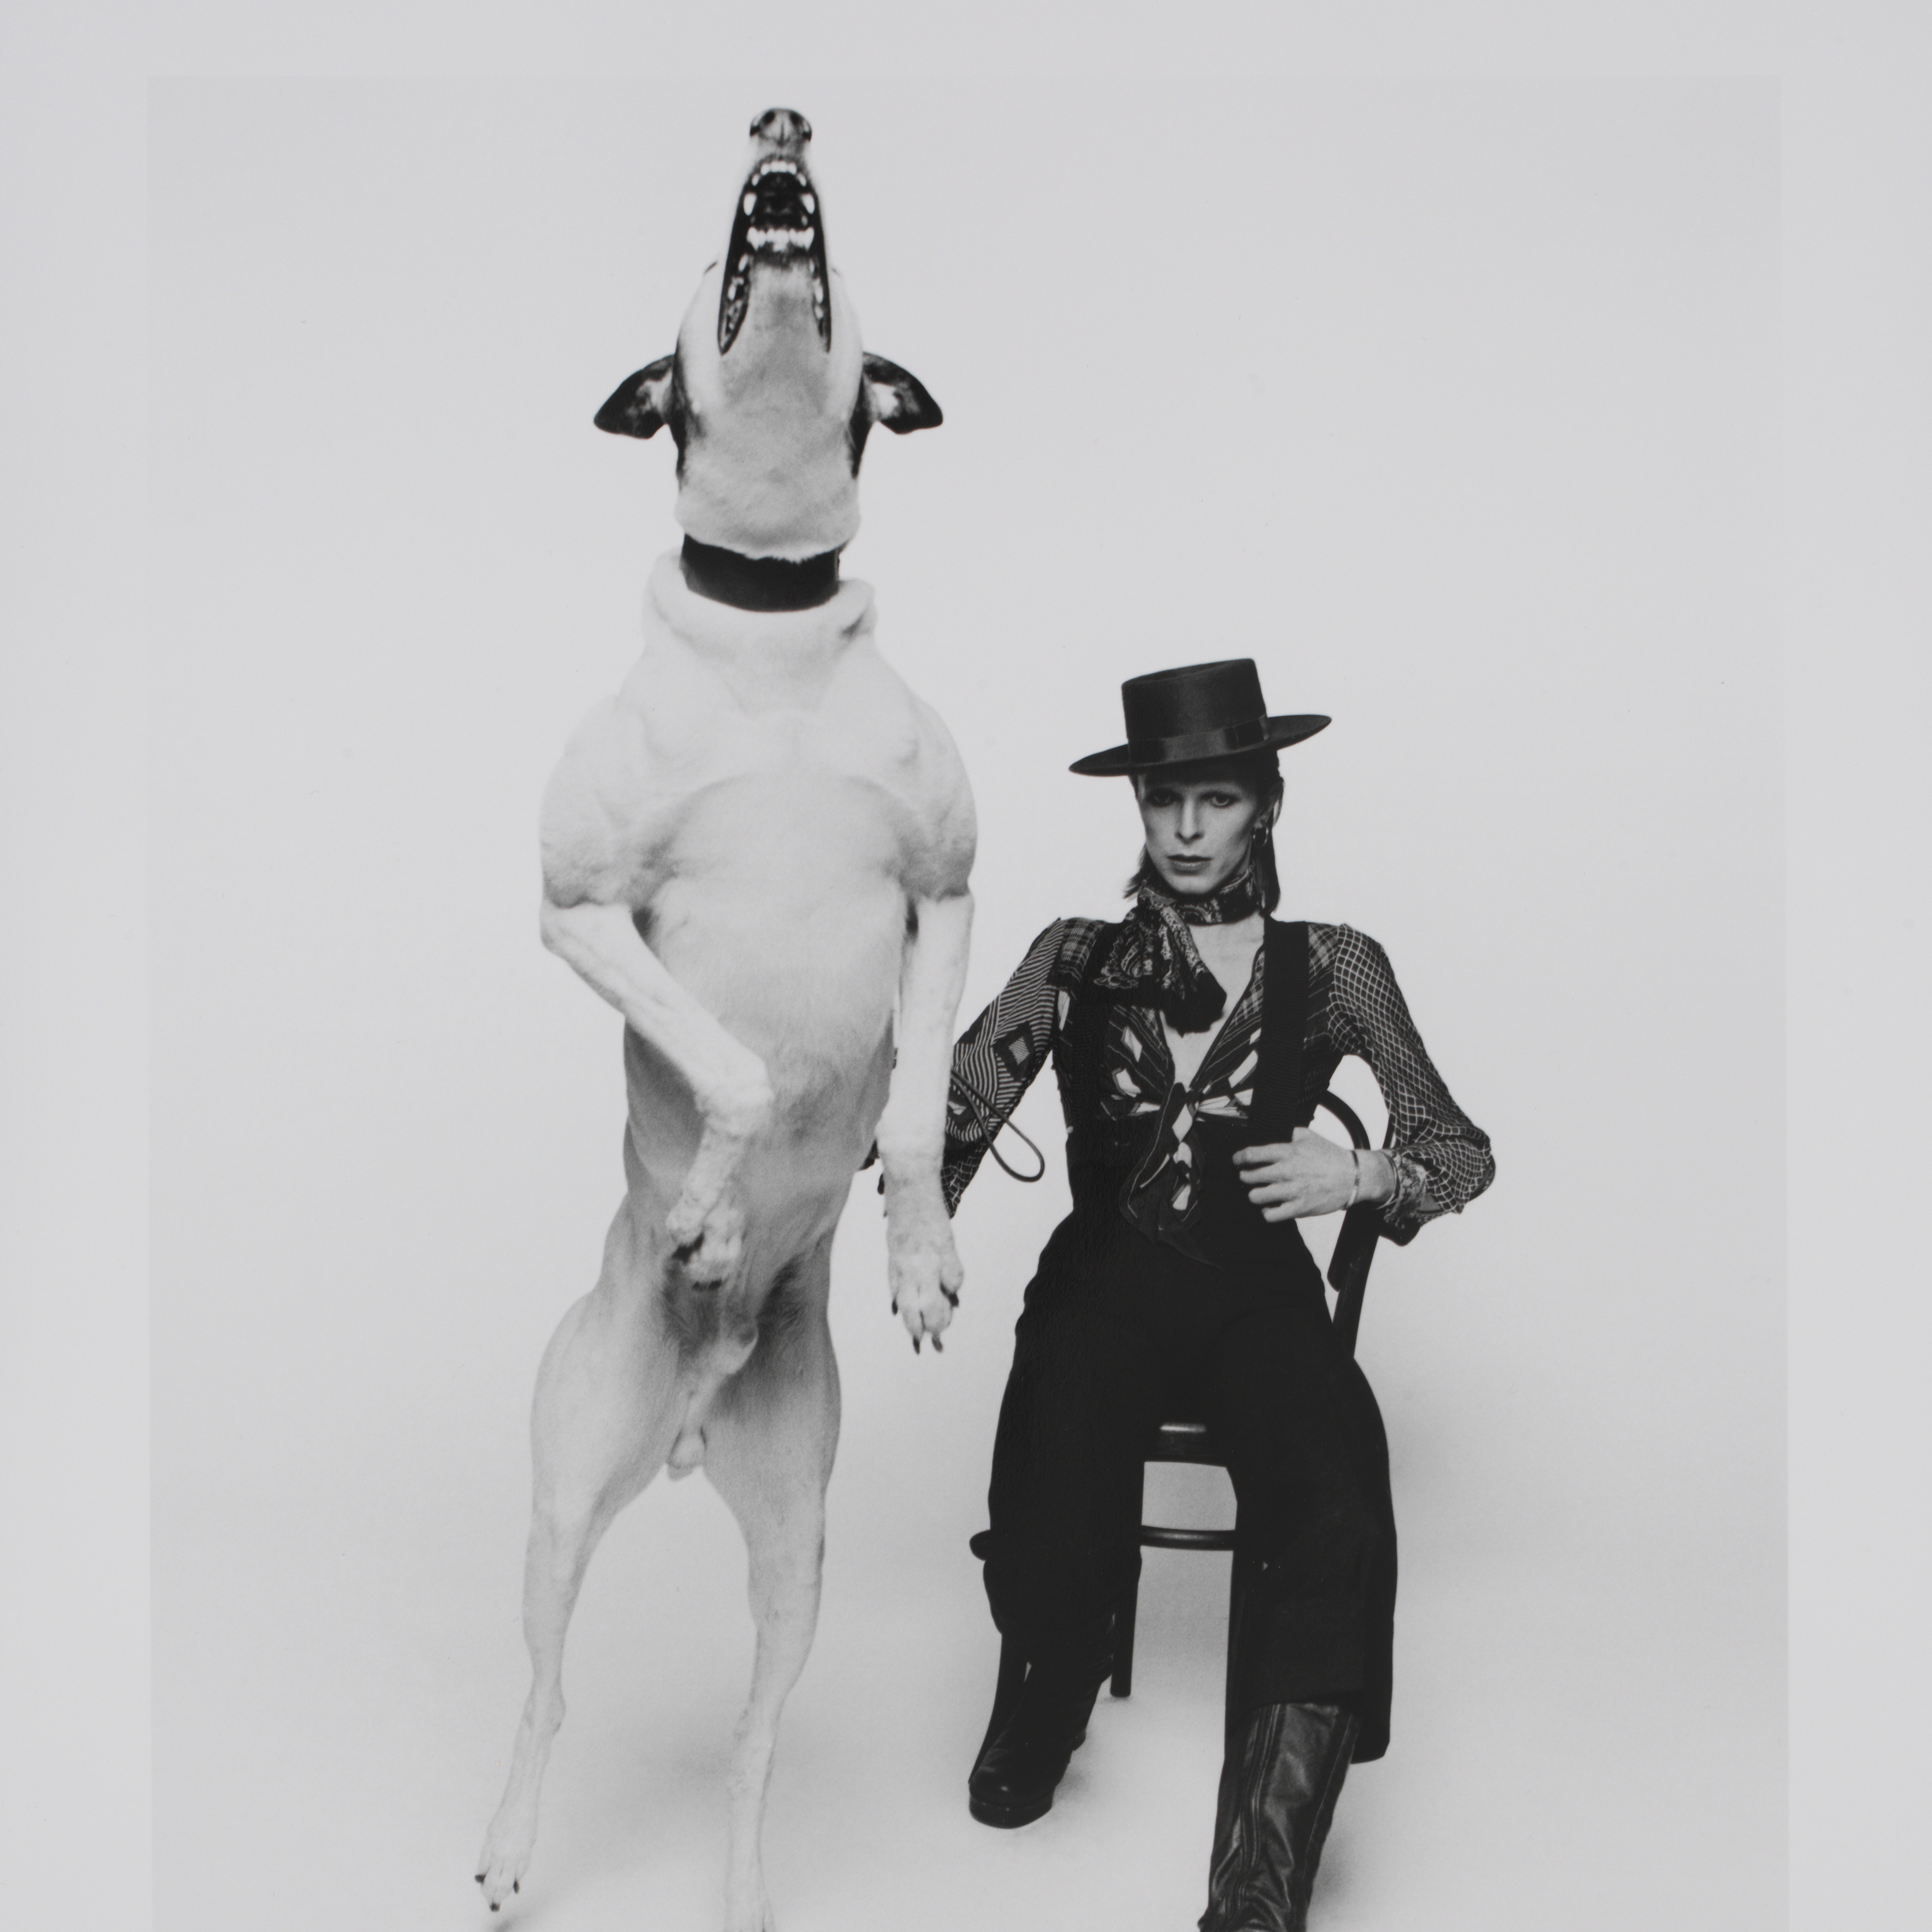 <p>Promotional photograph of David Bowie for <em>Diamond Dogs</em>, 1974. Photograph by Terry O&#39;Neill. Image &copy; Victoria and Albert Museum</p>